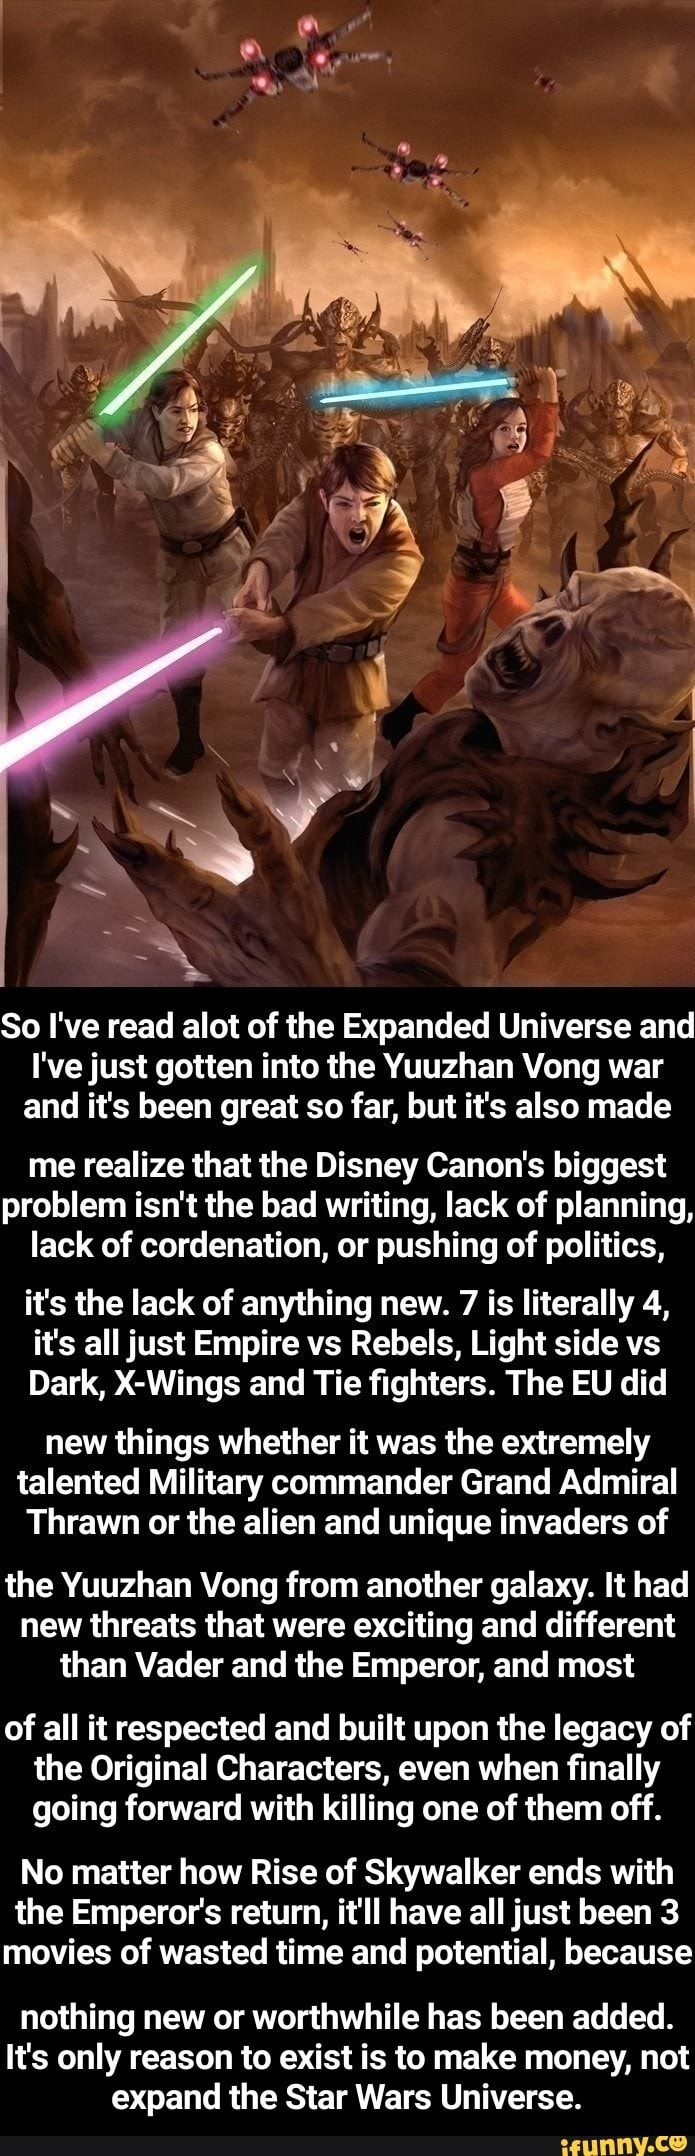 So I Ve Read Alot Of The Expanded Universe And I Ve Just Gotten Into The Yuuzhan Vong War And It S Been Great So Far But It S Also Made Me Realize That The Dis